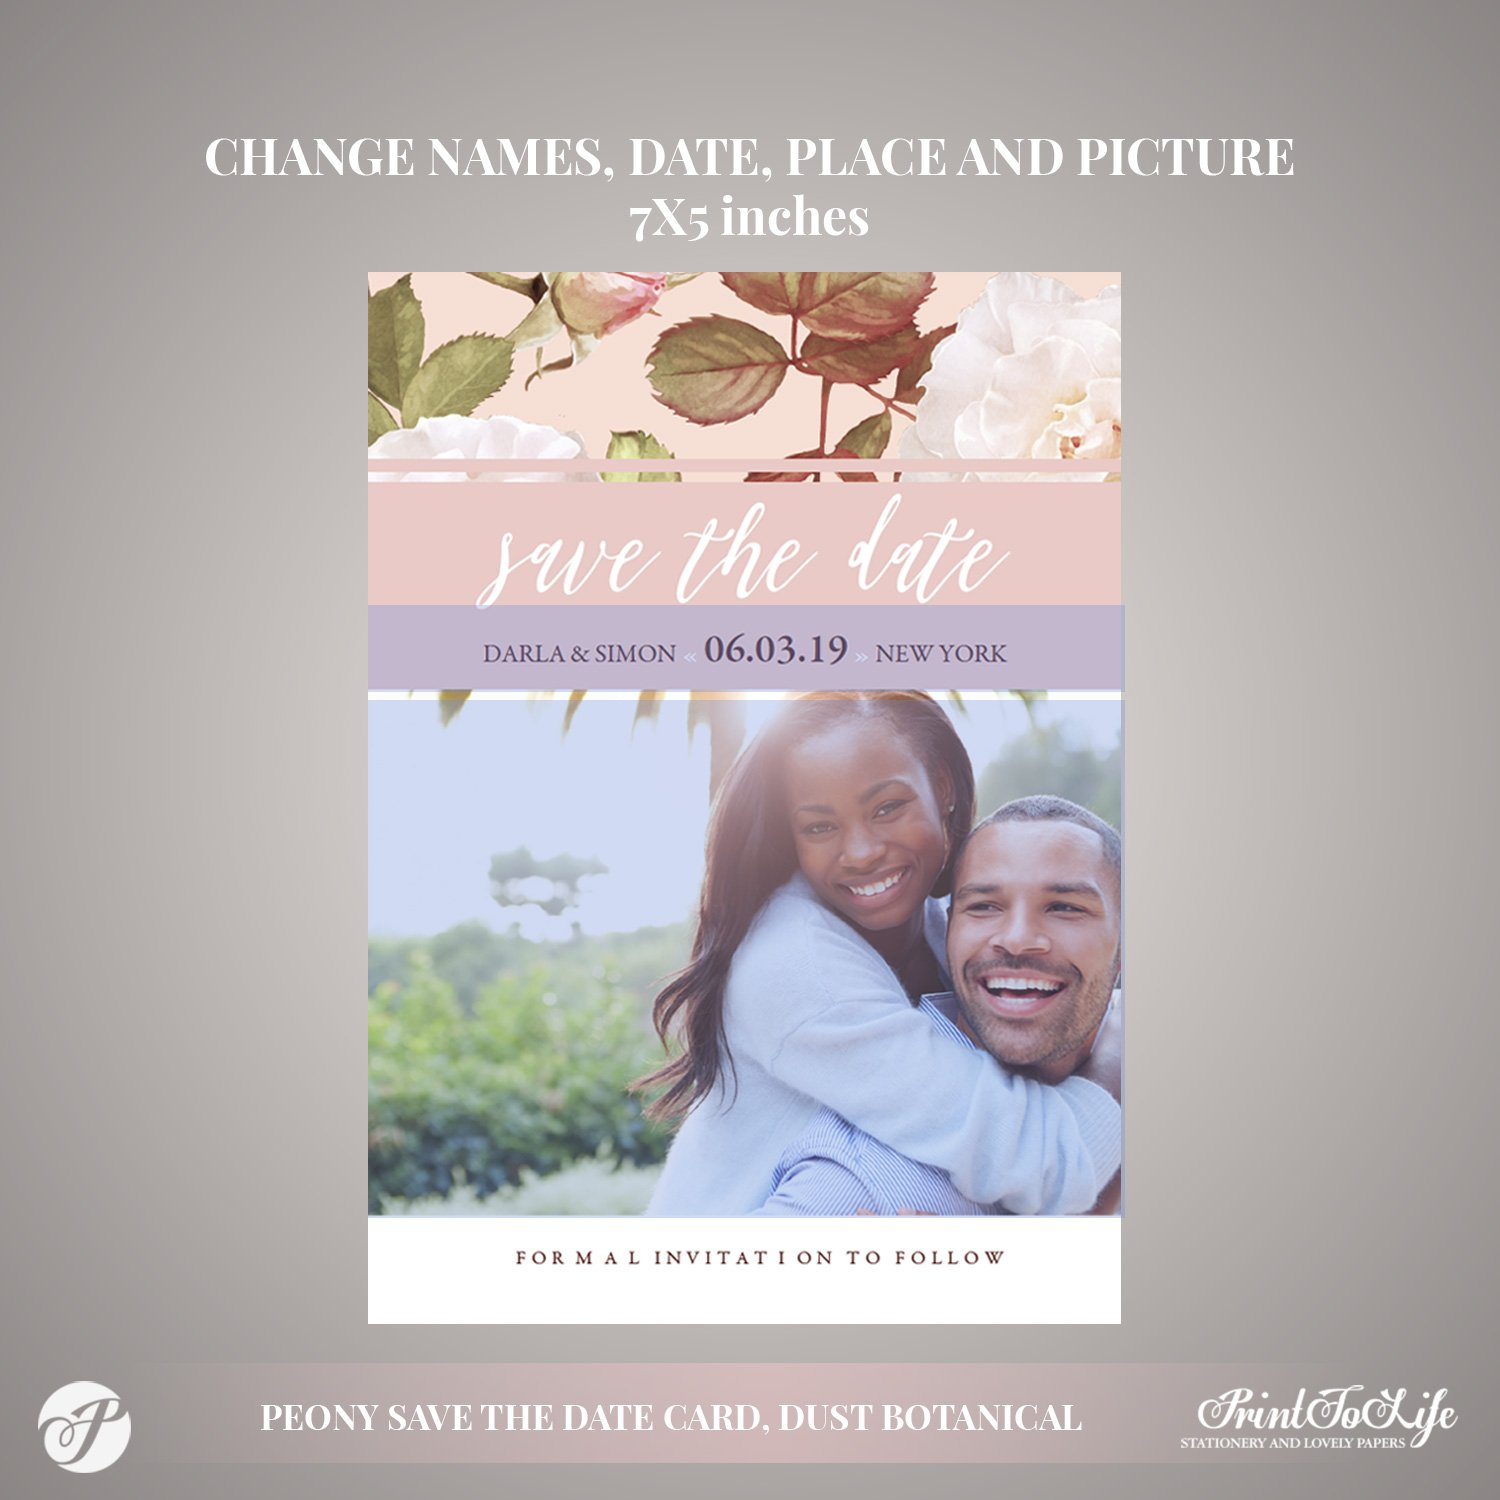 Peony Save the Date Card by Printolife